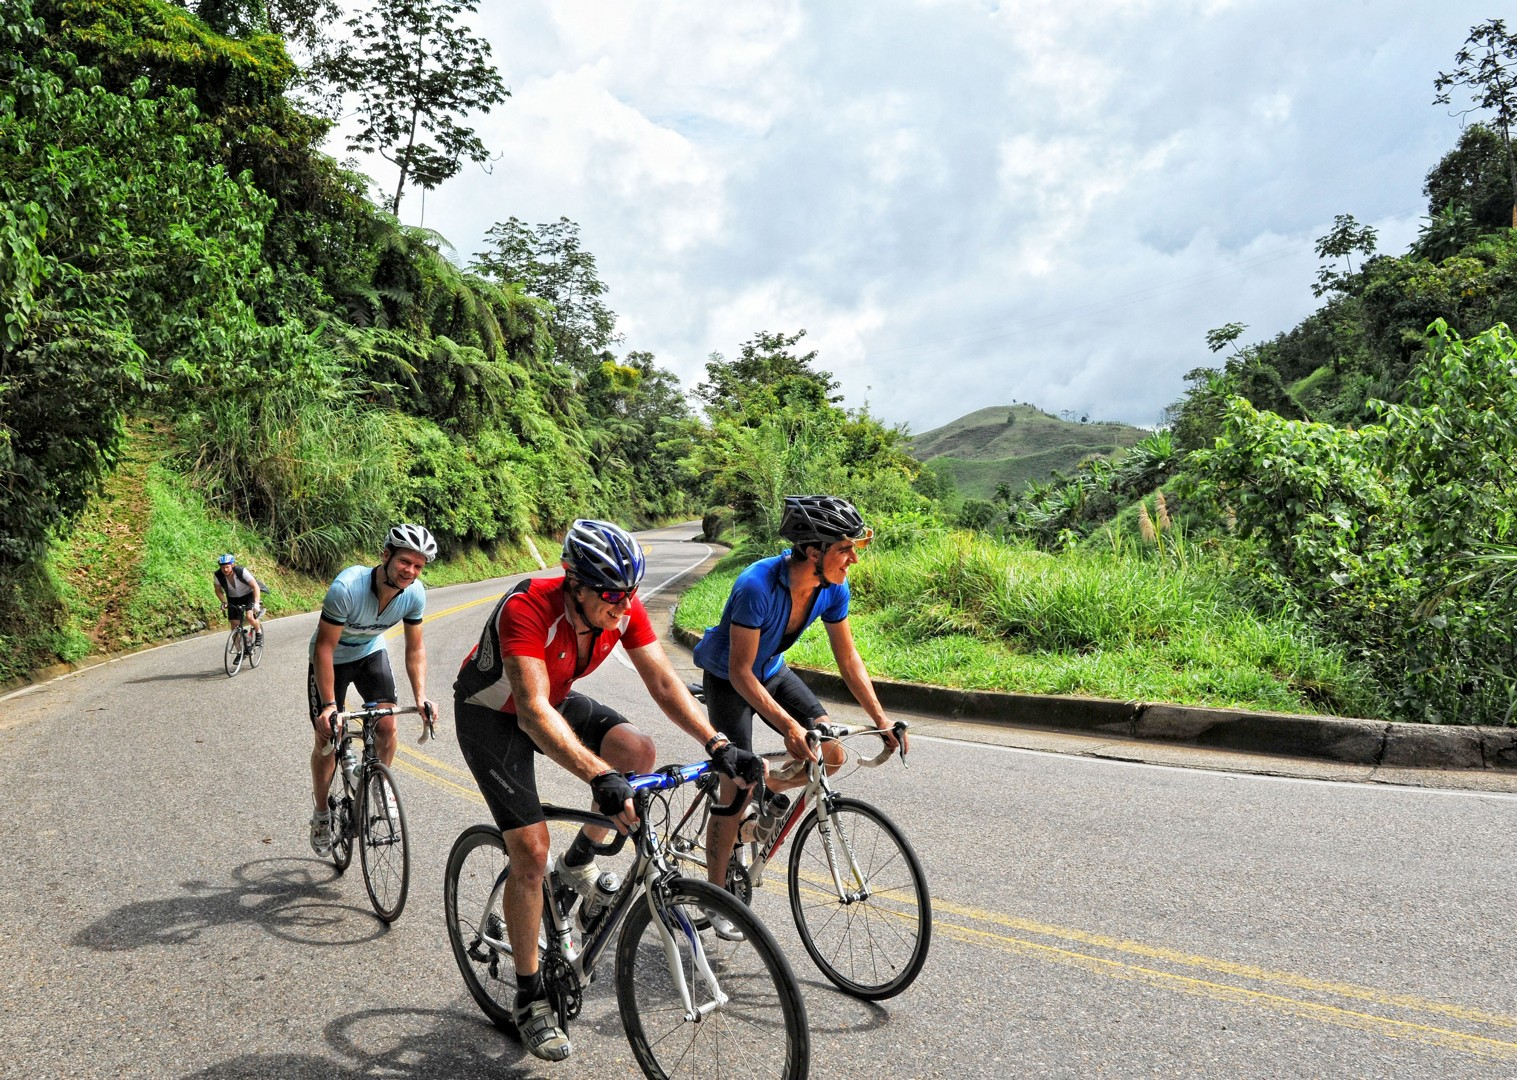 guided-road-cycling-holiday-emerald-mountains-colombia.jpg - Colombia - Emerald Mountains - Road Cycling